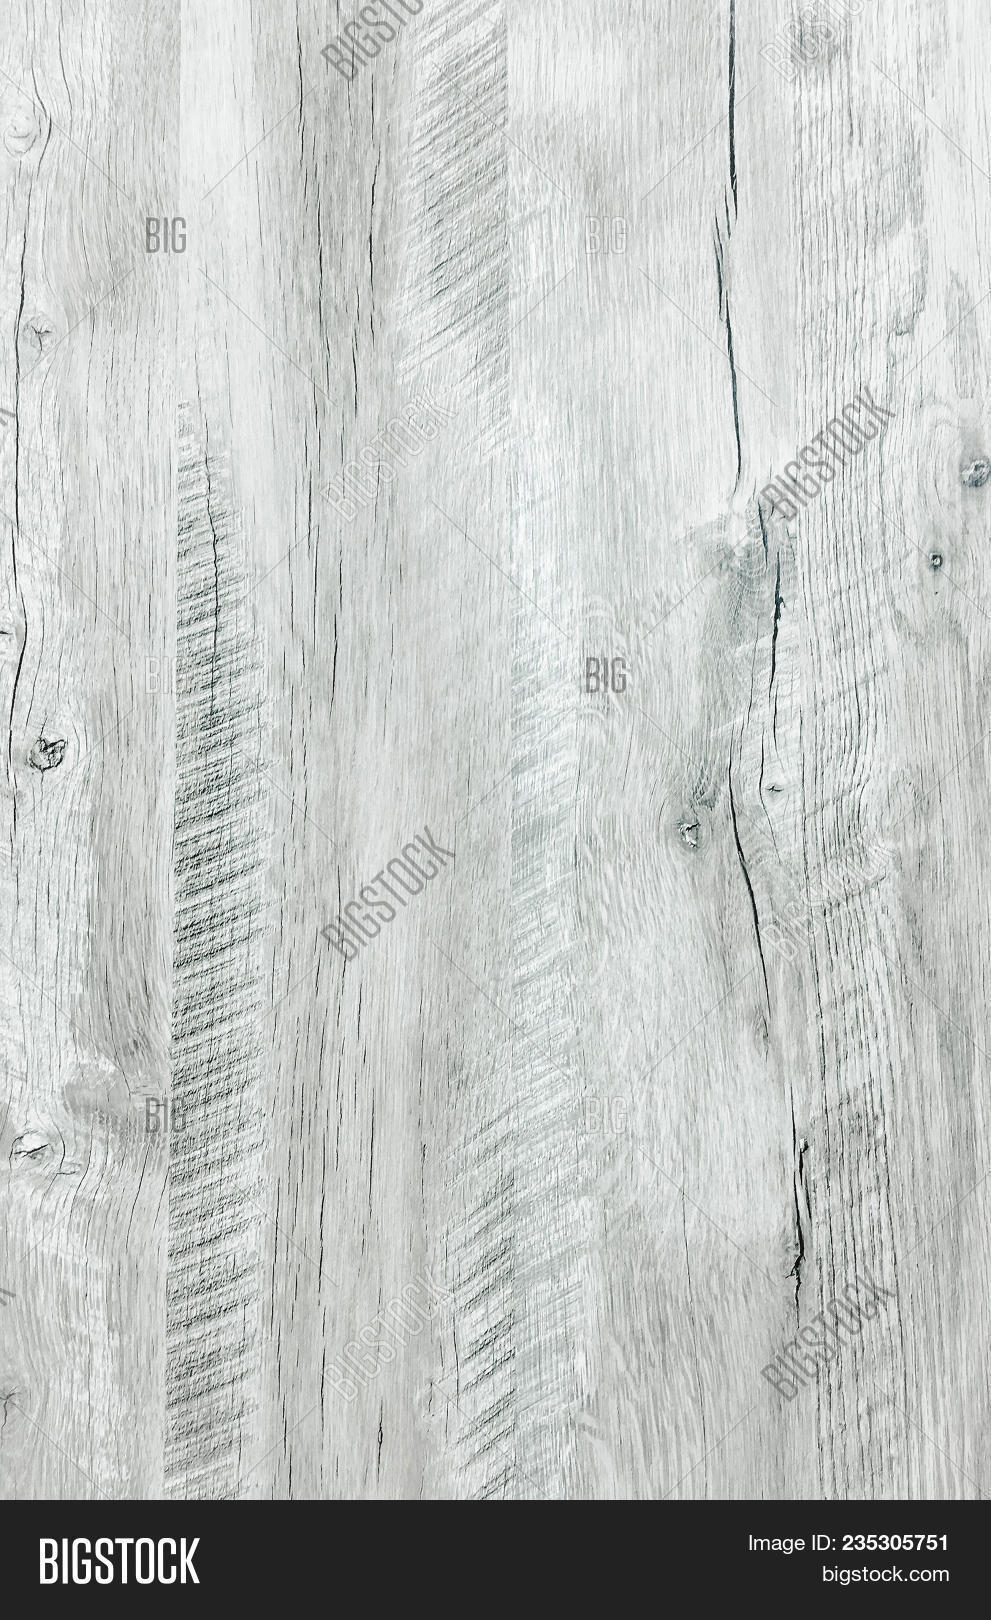 Light White Washed Soft Wood Texture Surface As Background Grunge Whitewashed Varnished Wooden Plan